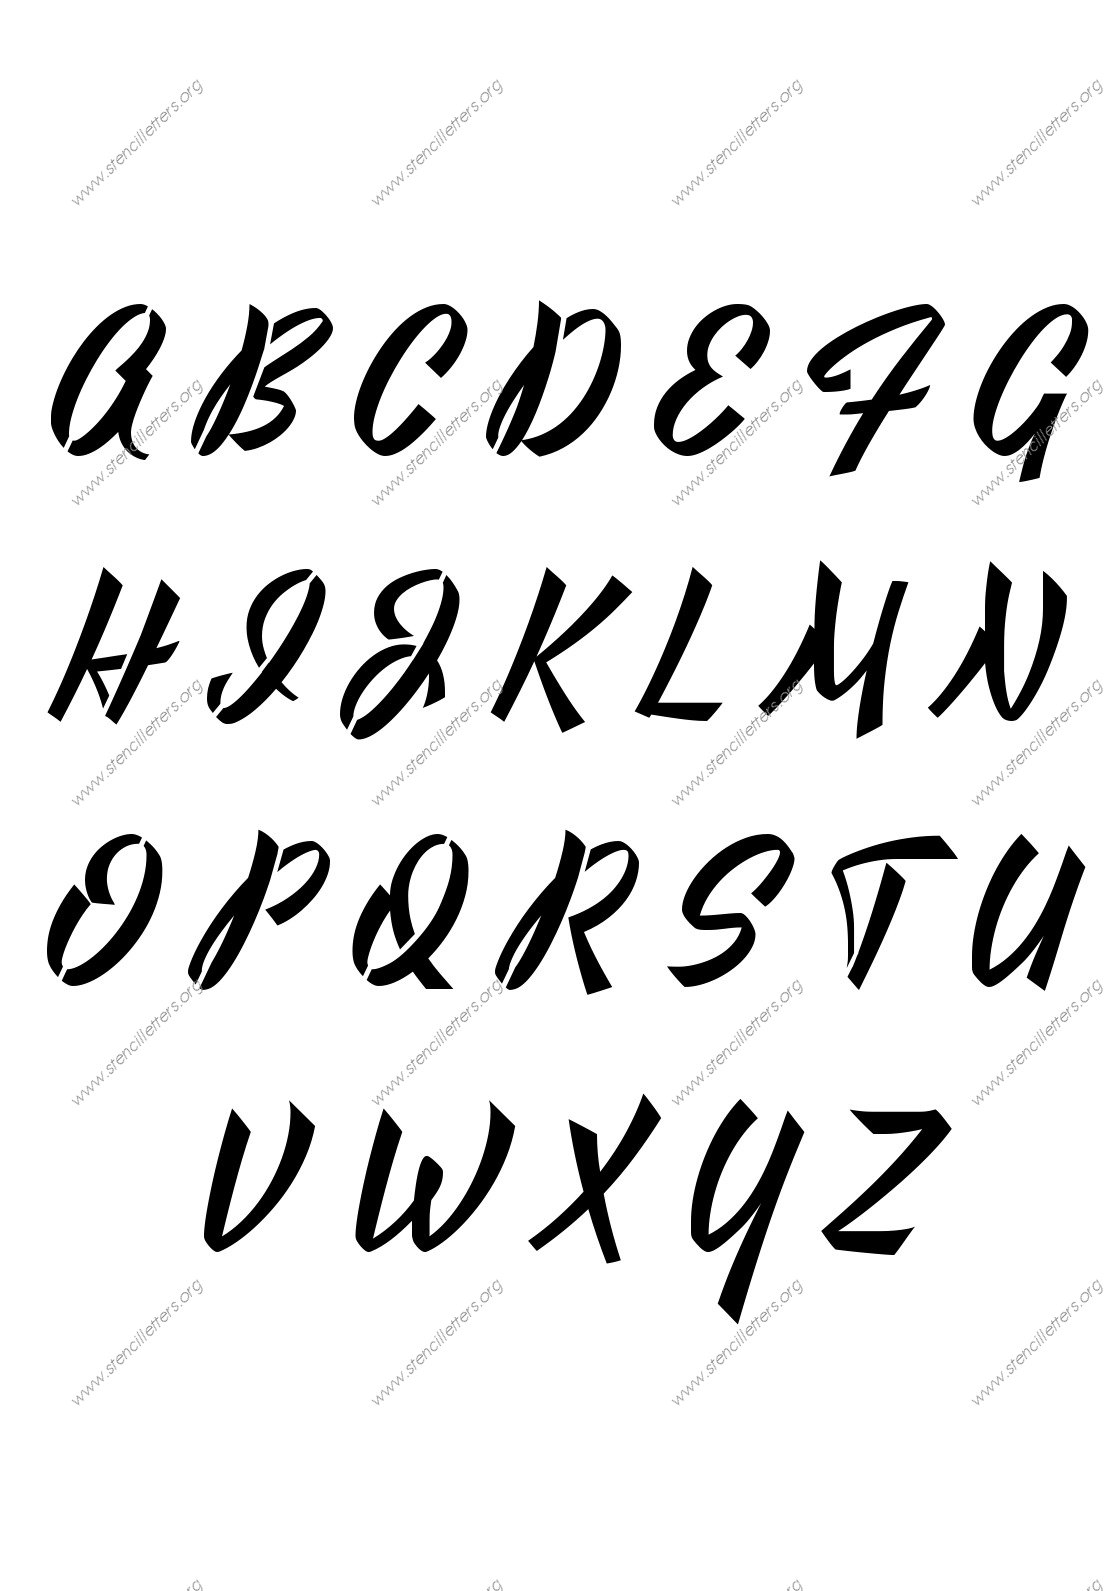 1940s Brushed Cursive Stencil Letter Set